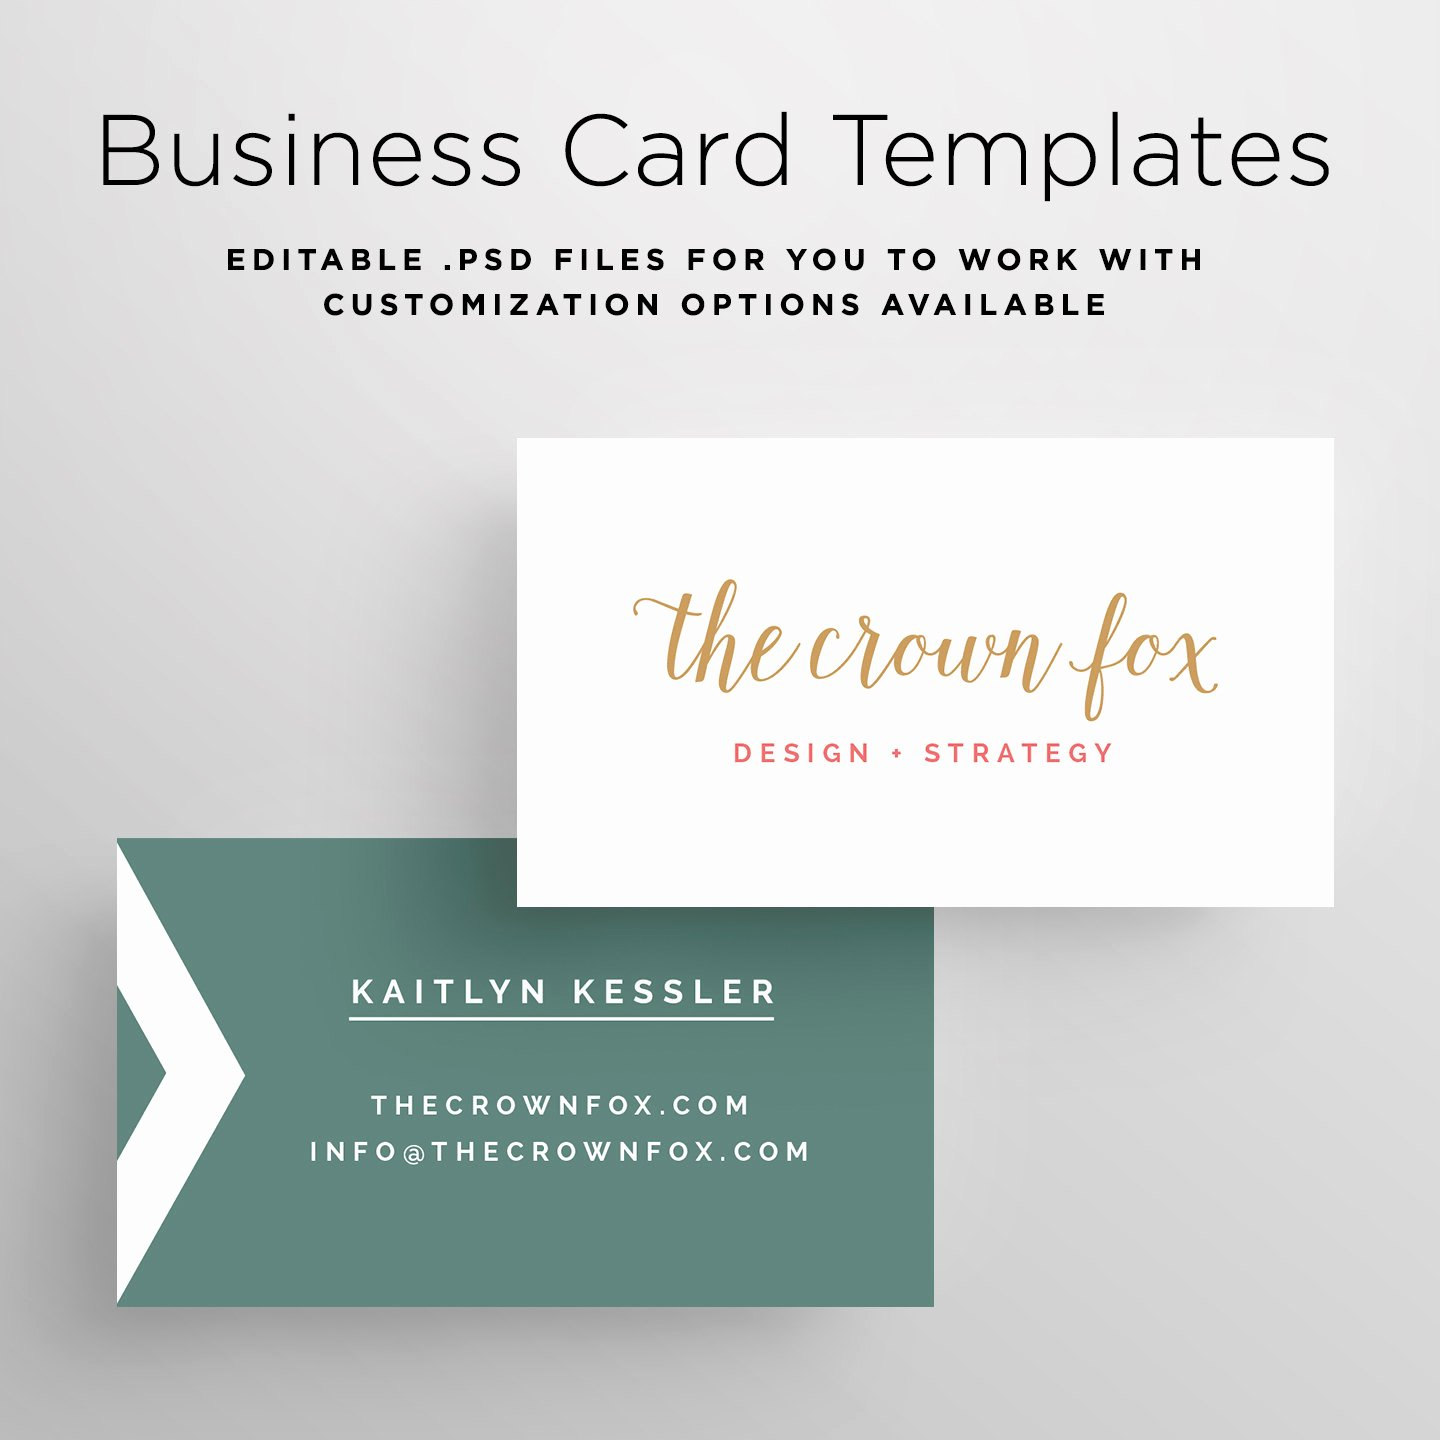 Business Card Sheet Template Lovely Business Card Template Printable Design Business Card